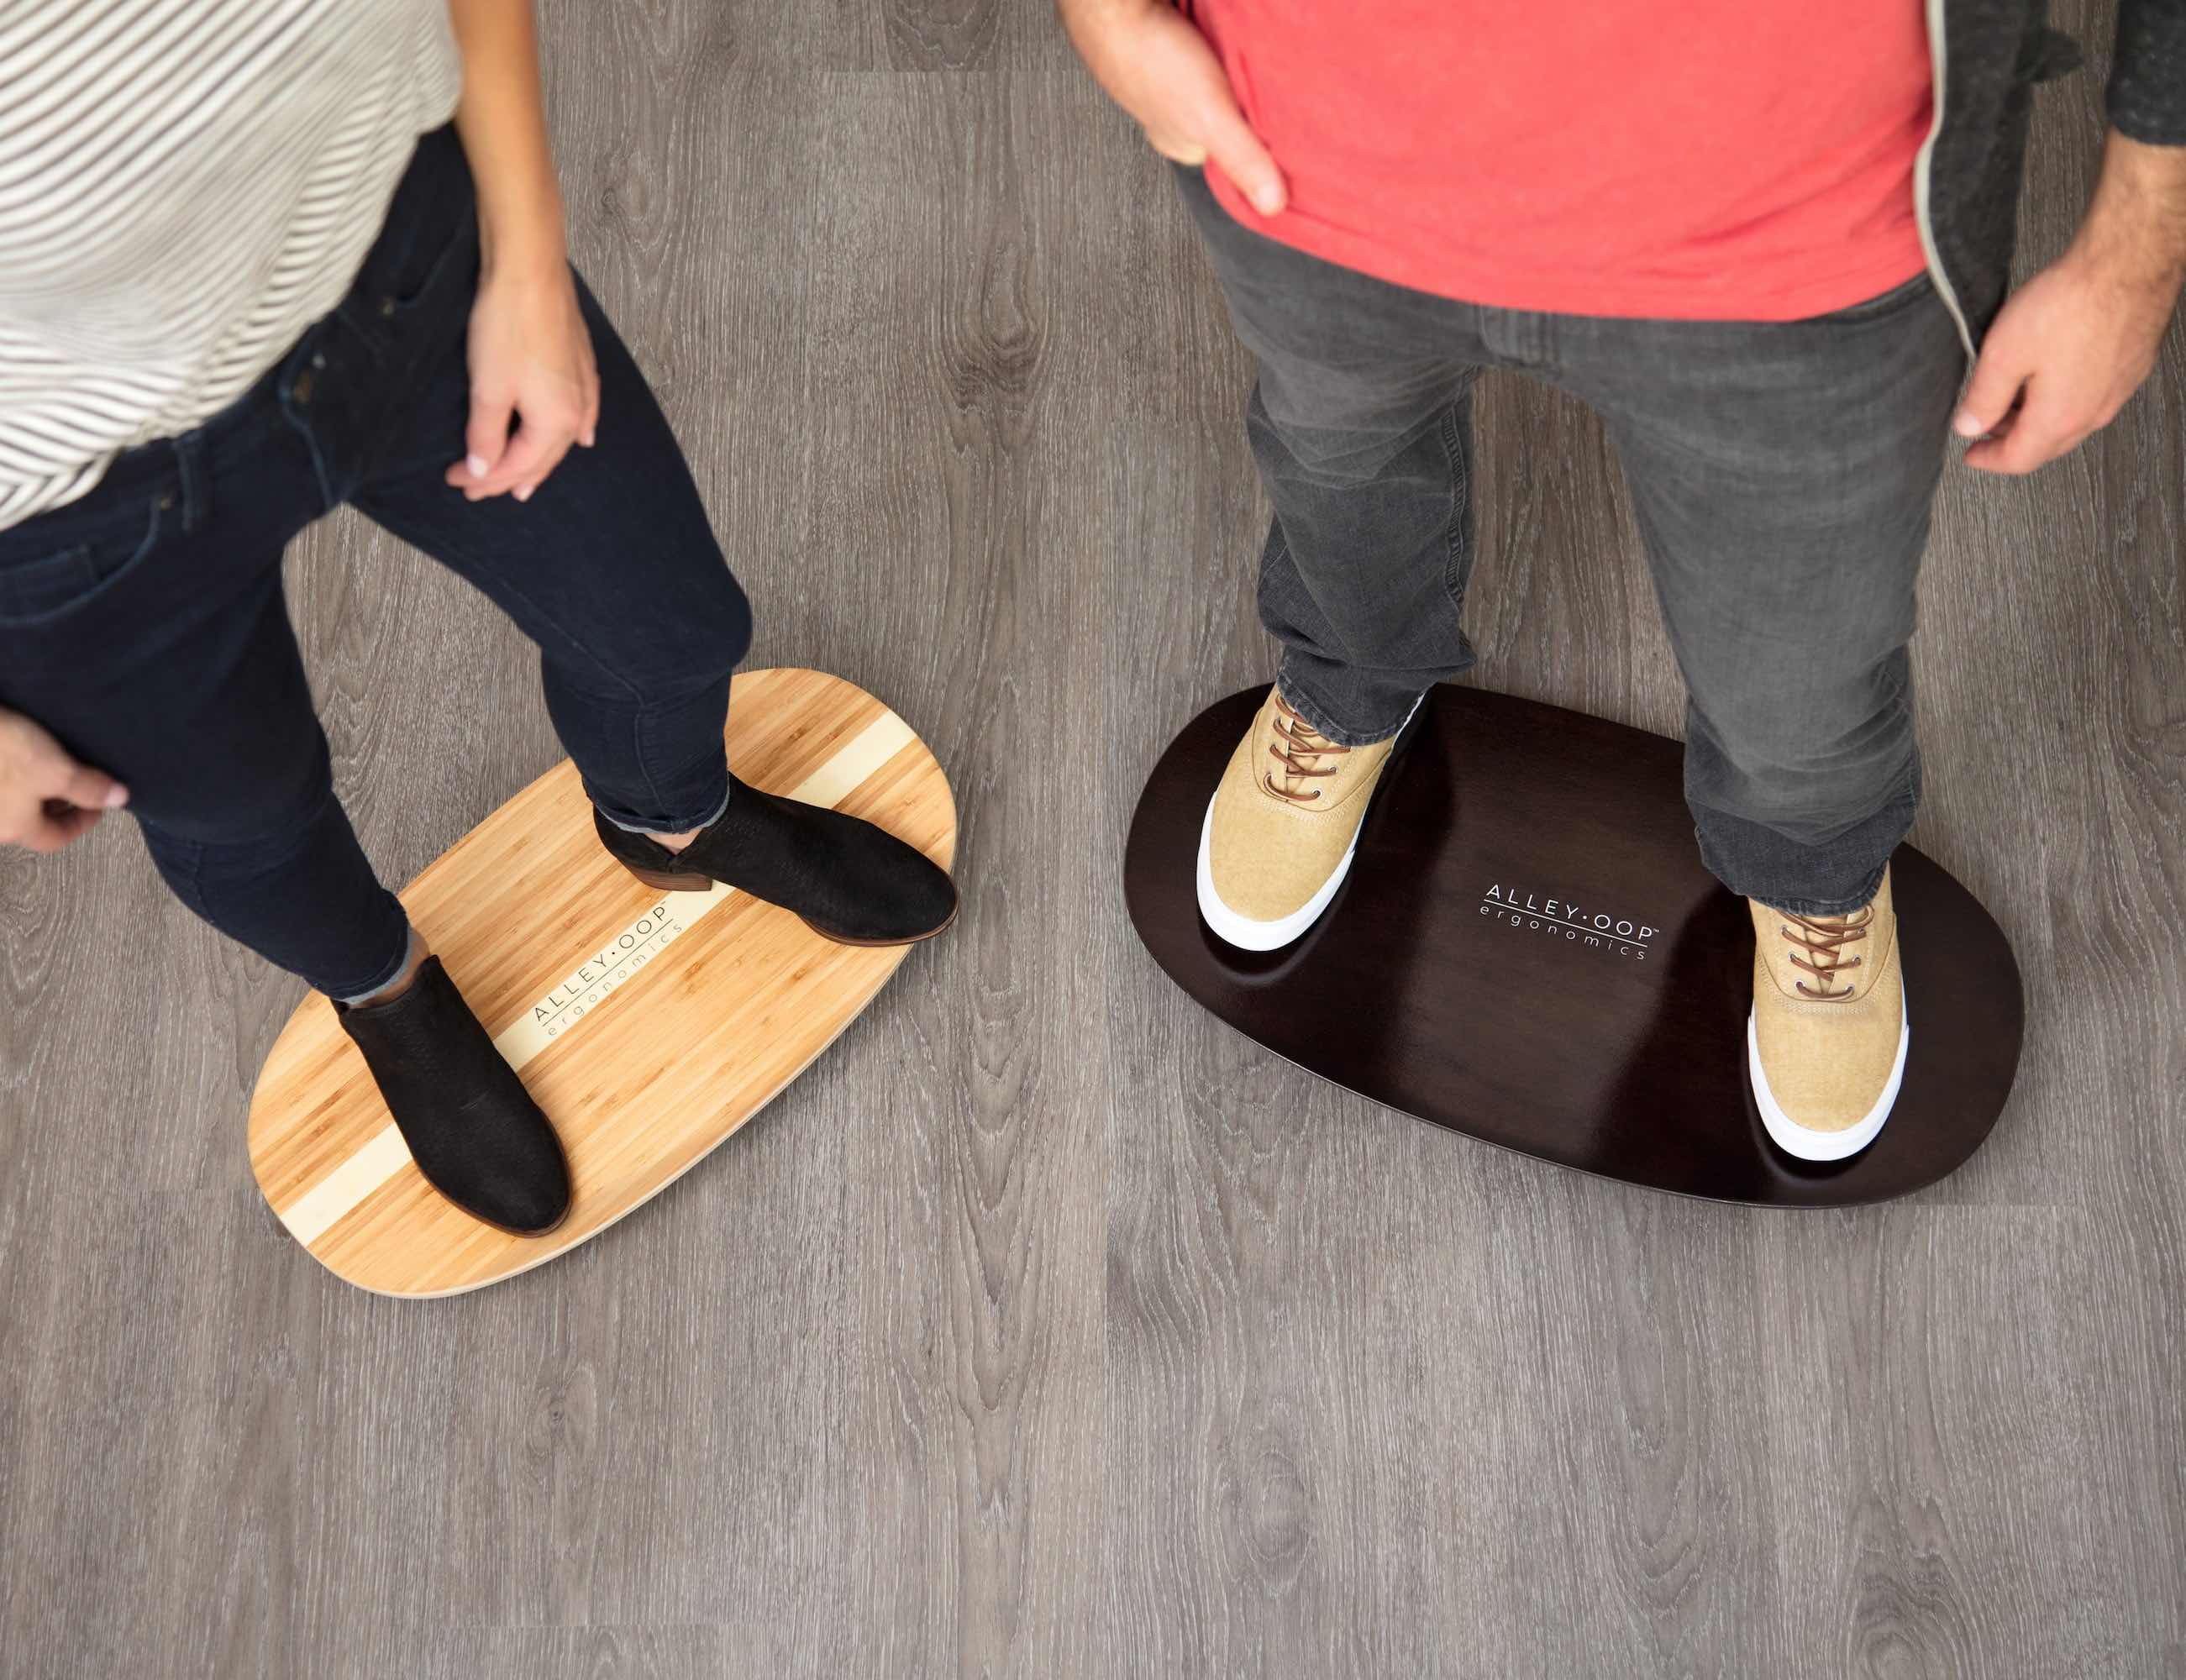 AlleyOOP Rocker Standing Desk Board